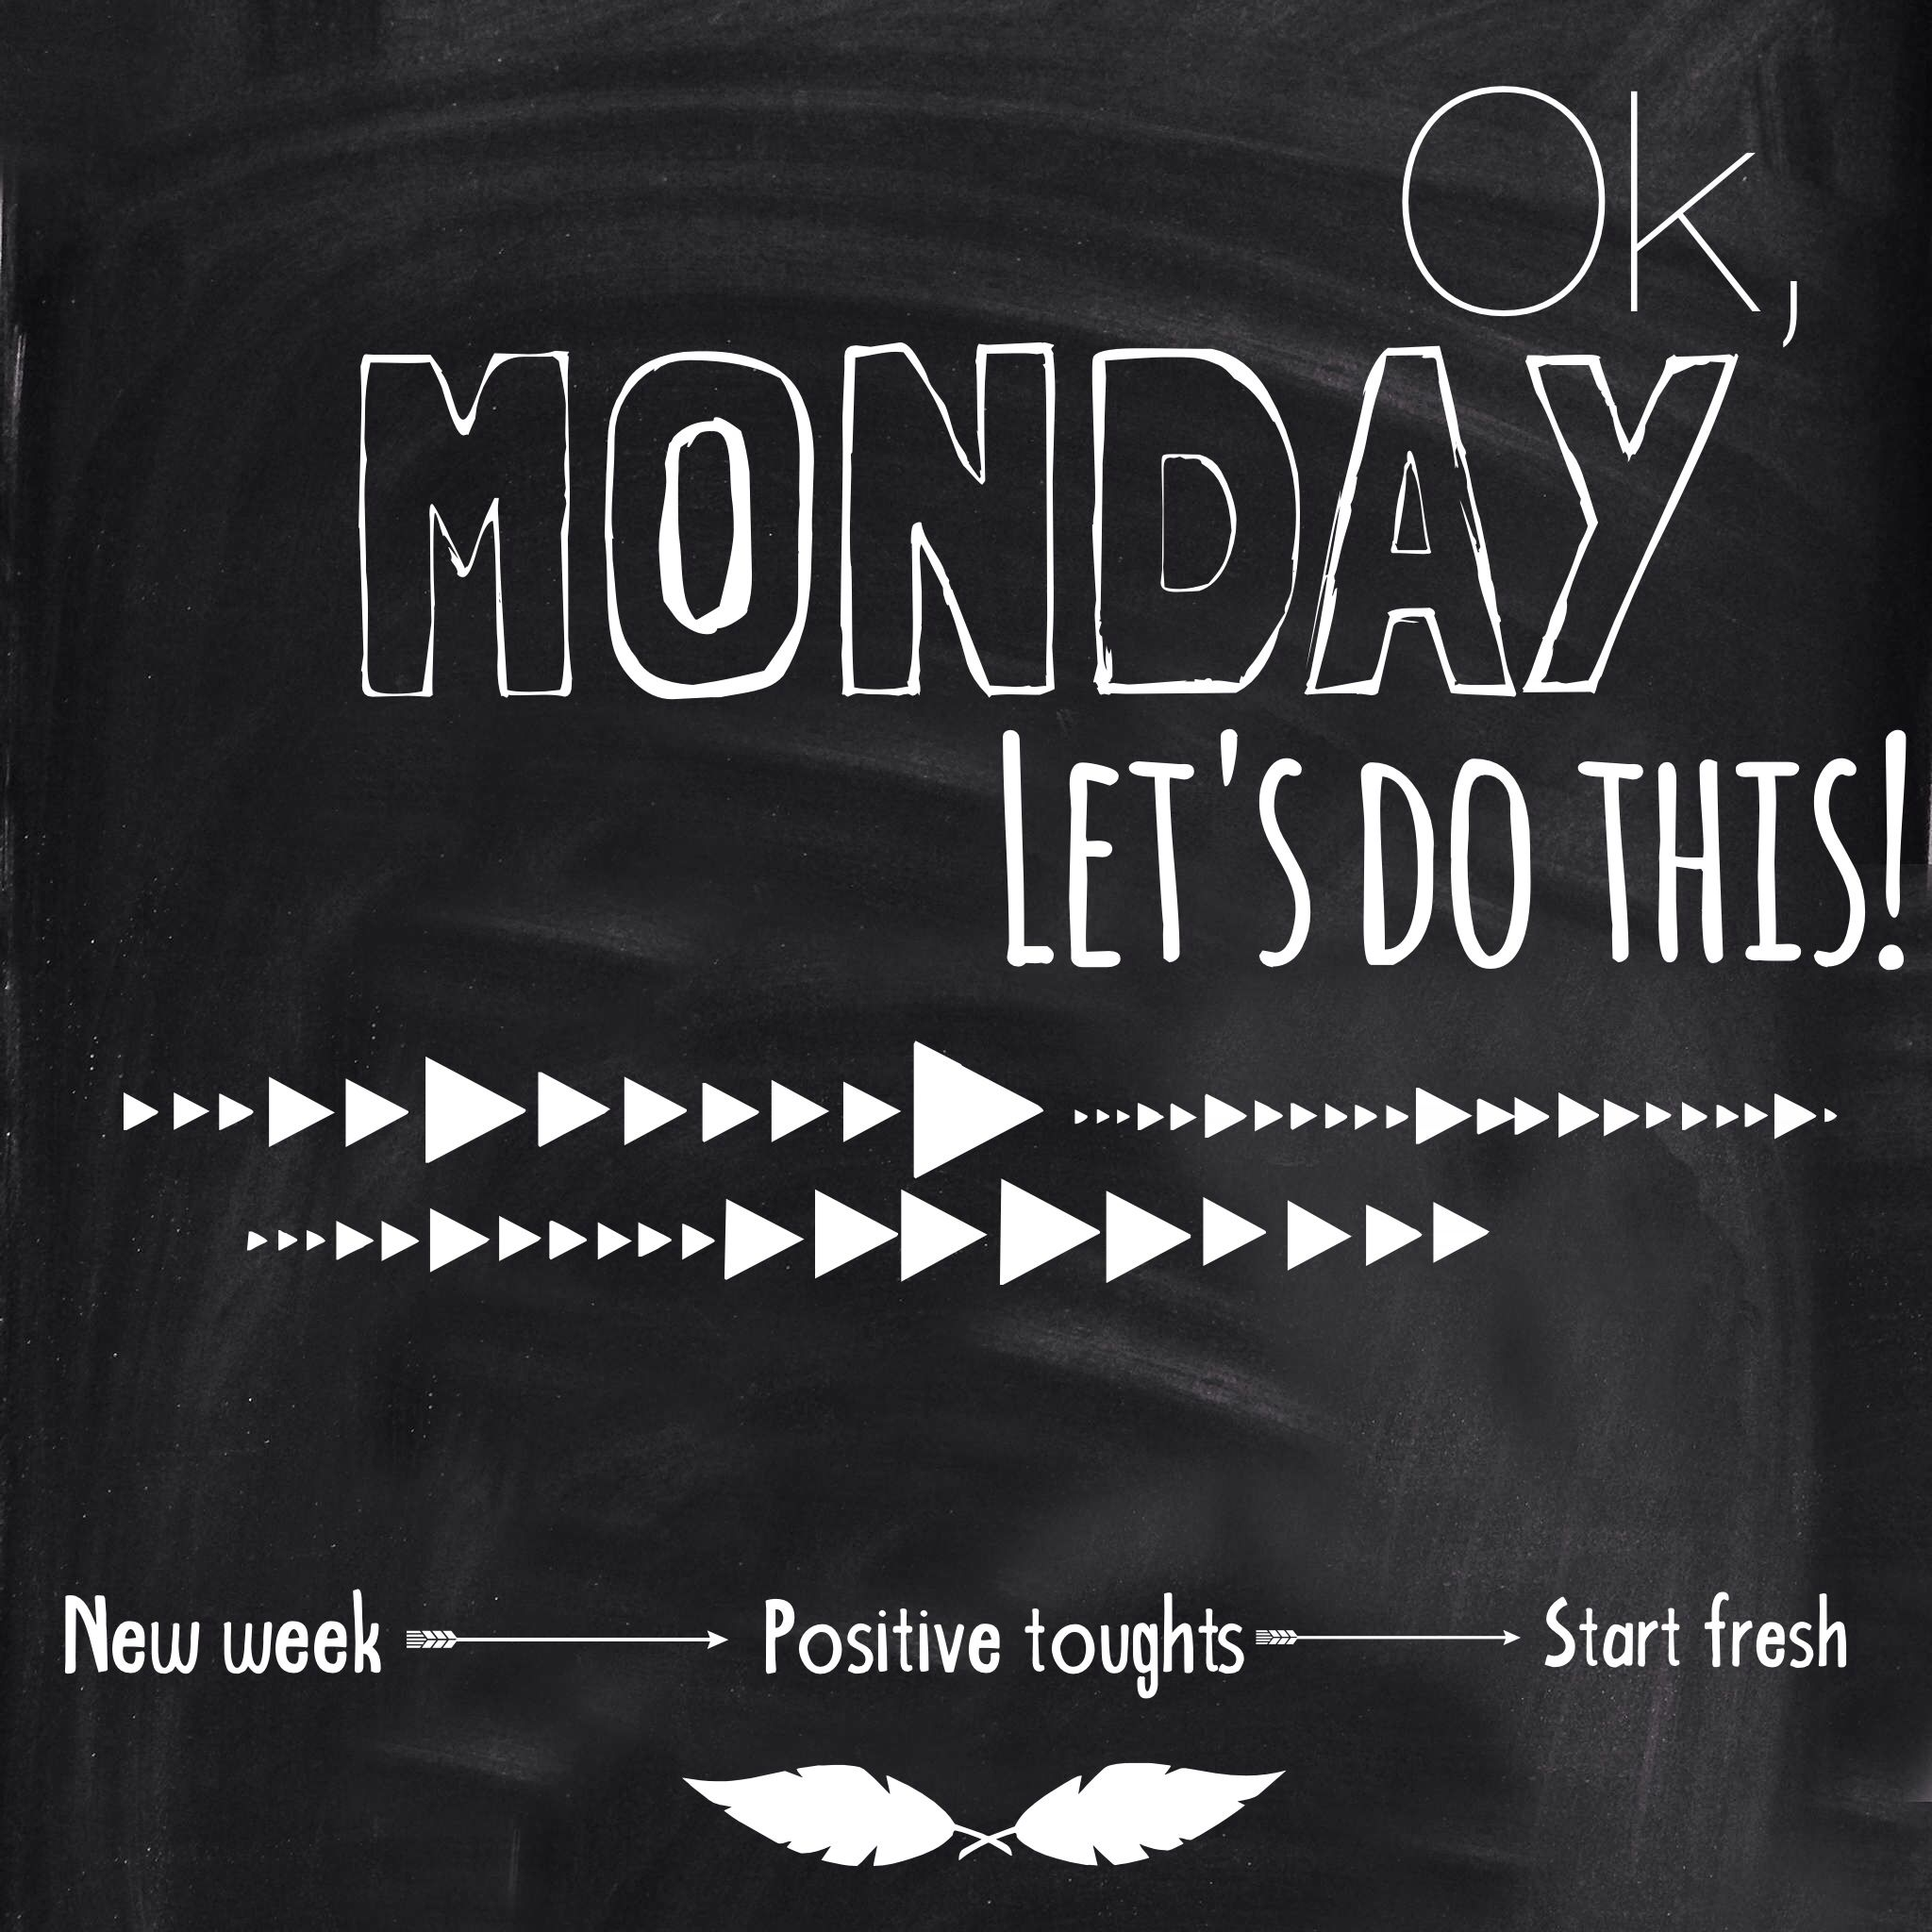 Monday Motivation Meme Funny : Quote ok monday let s do this new week positive